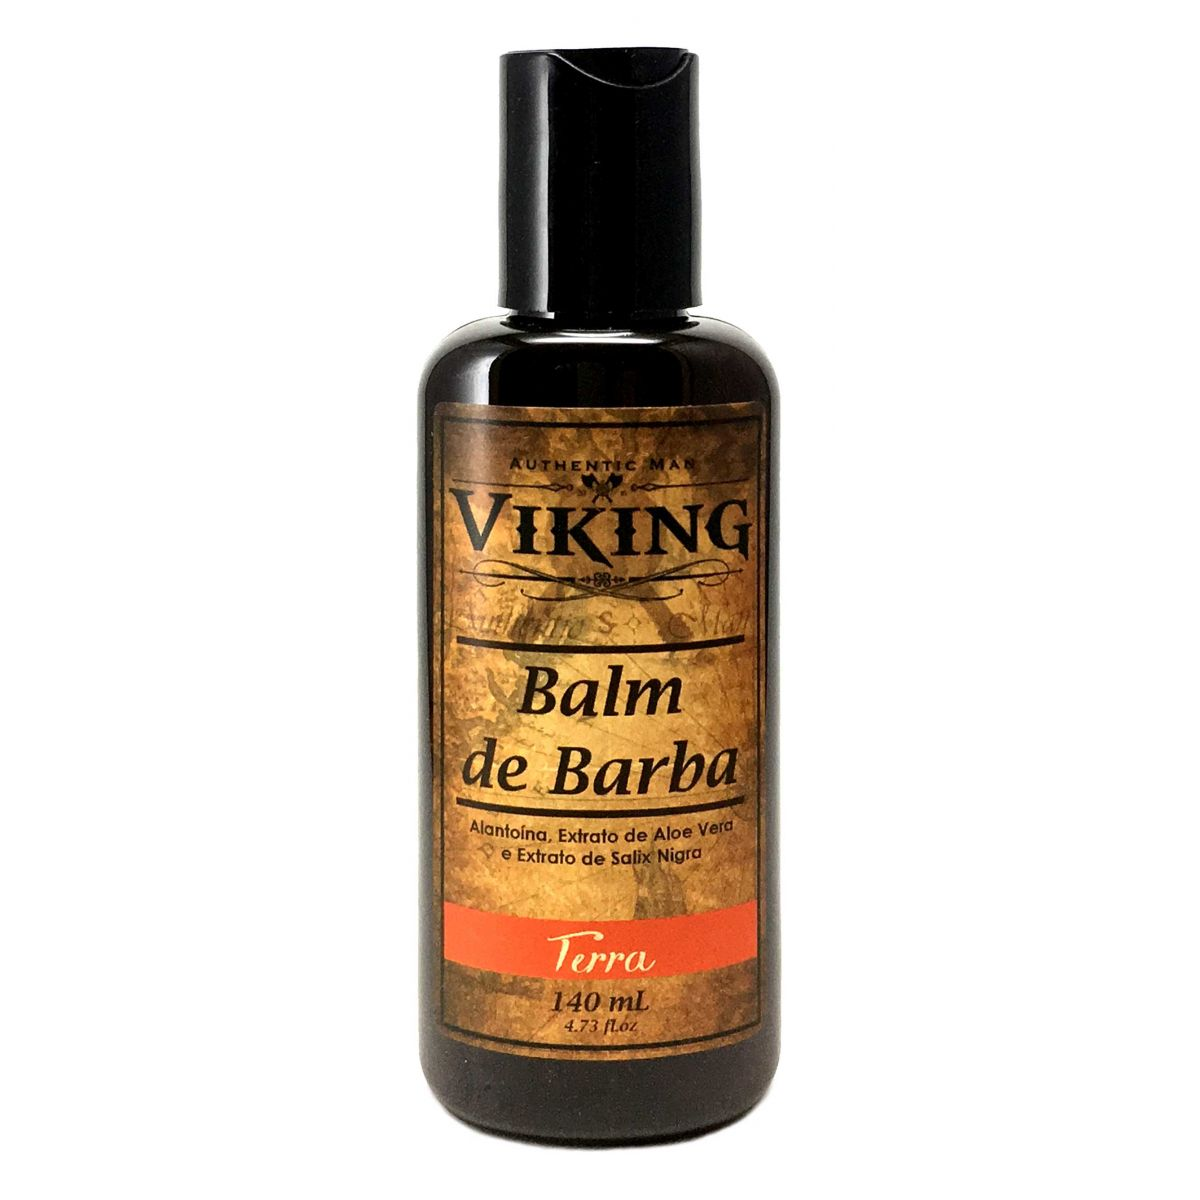 Balm de Barba - Terra - Viking 140 mL  - Viking